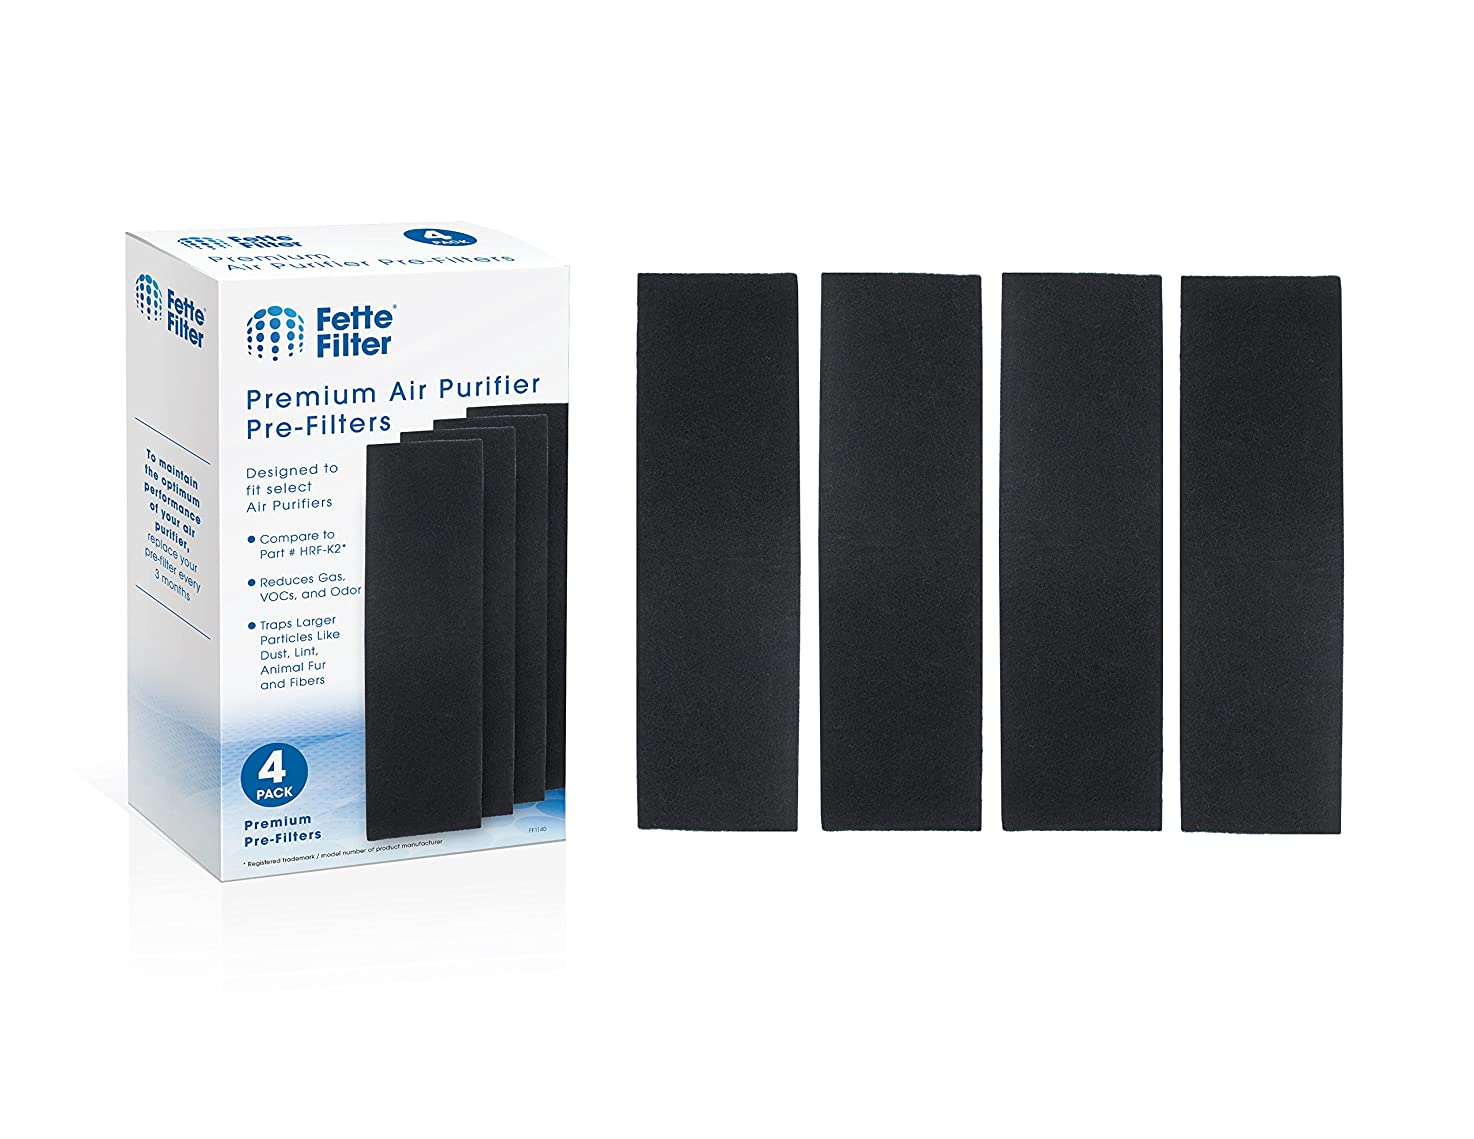 Fette Filter - Air Purifier Filter Compatible with Honeywell HRF-K2. Pack of 4